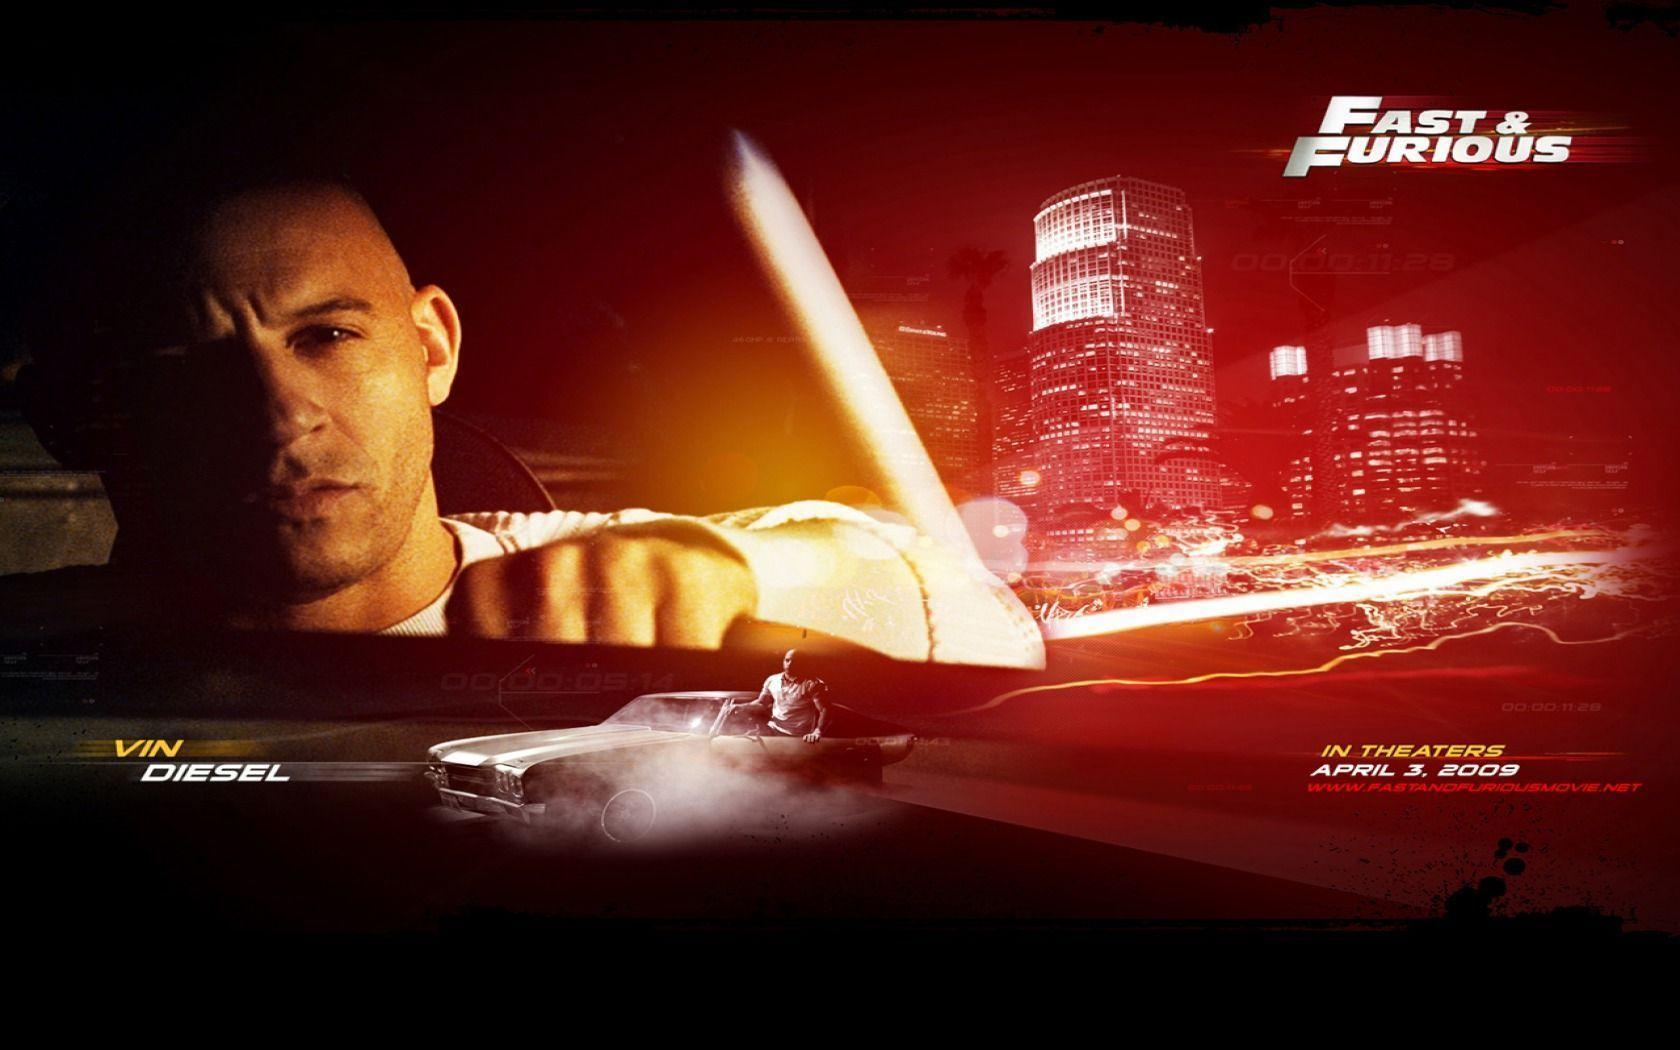 Fast And Furious 1 Cars Wallpapers Vin Diesel Fast And Furious Wallpapers Wallpaper Cave